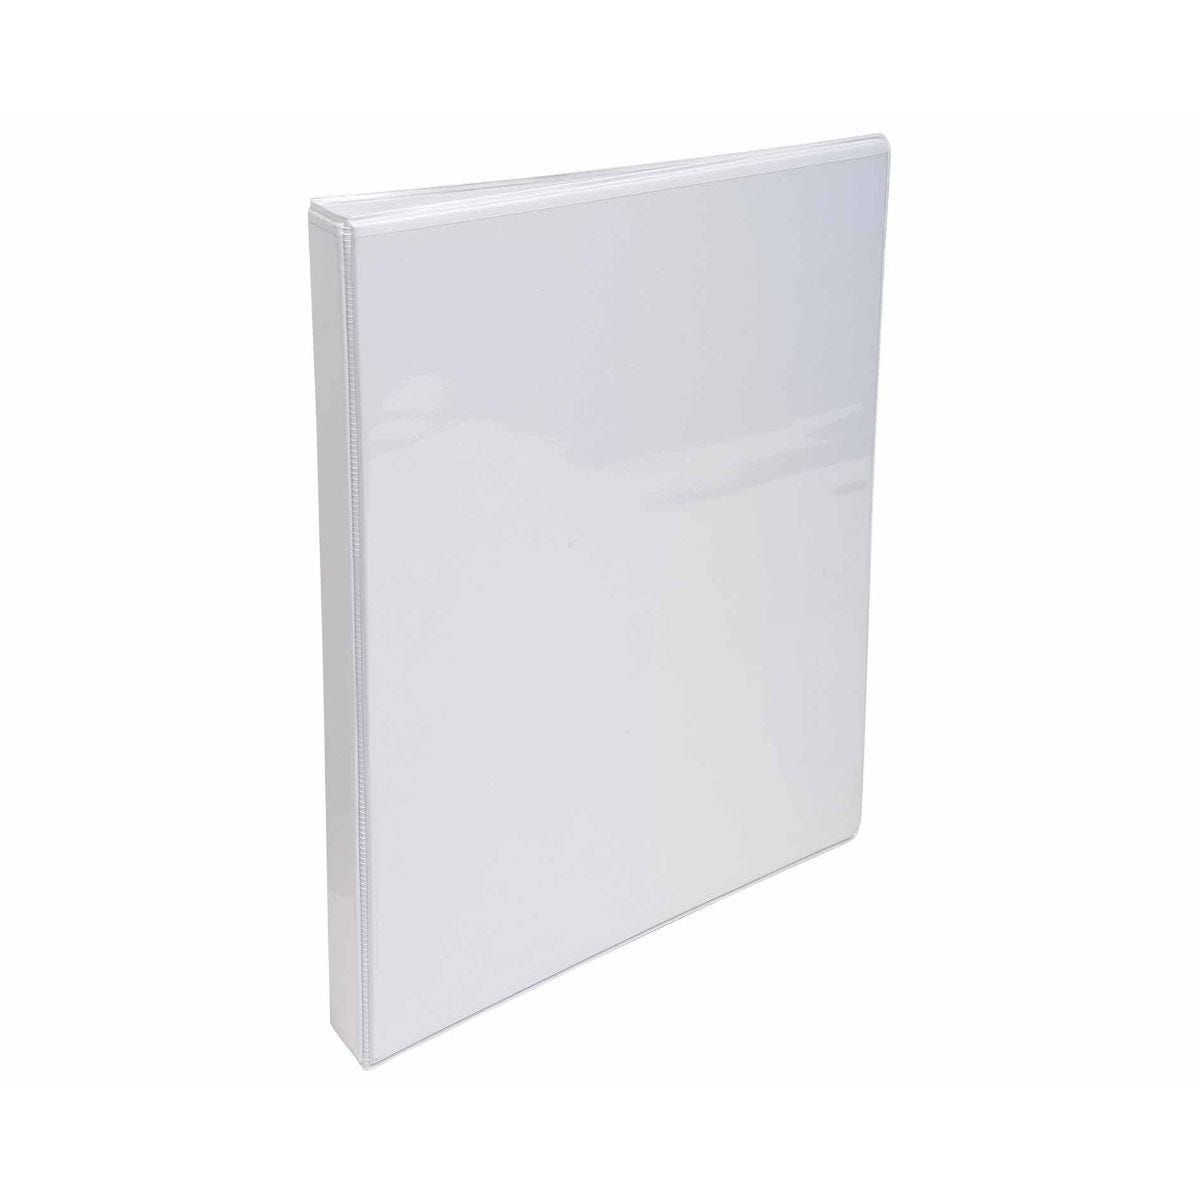 Exacompta Kreacover Presentation Ring Binder A5 2D Ring Pack of 10